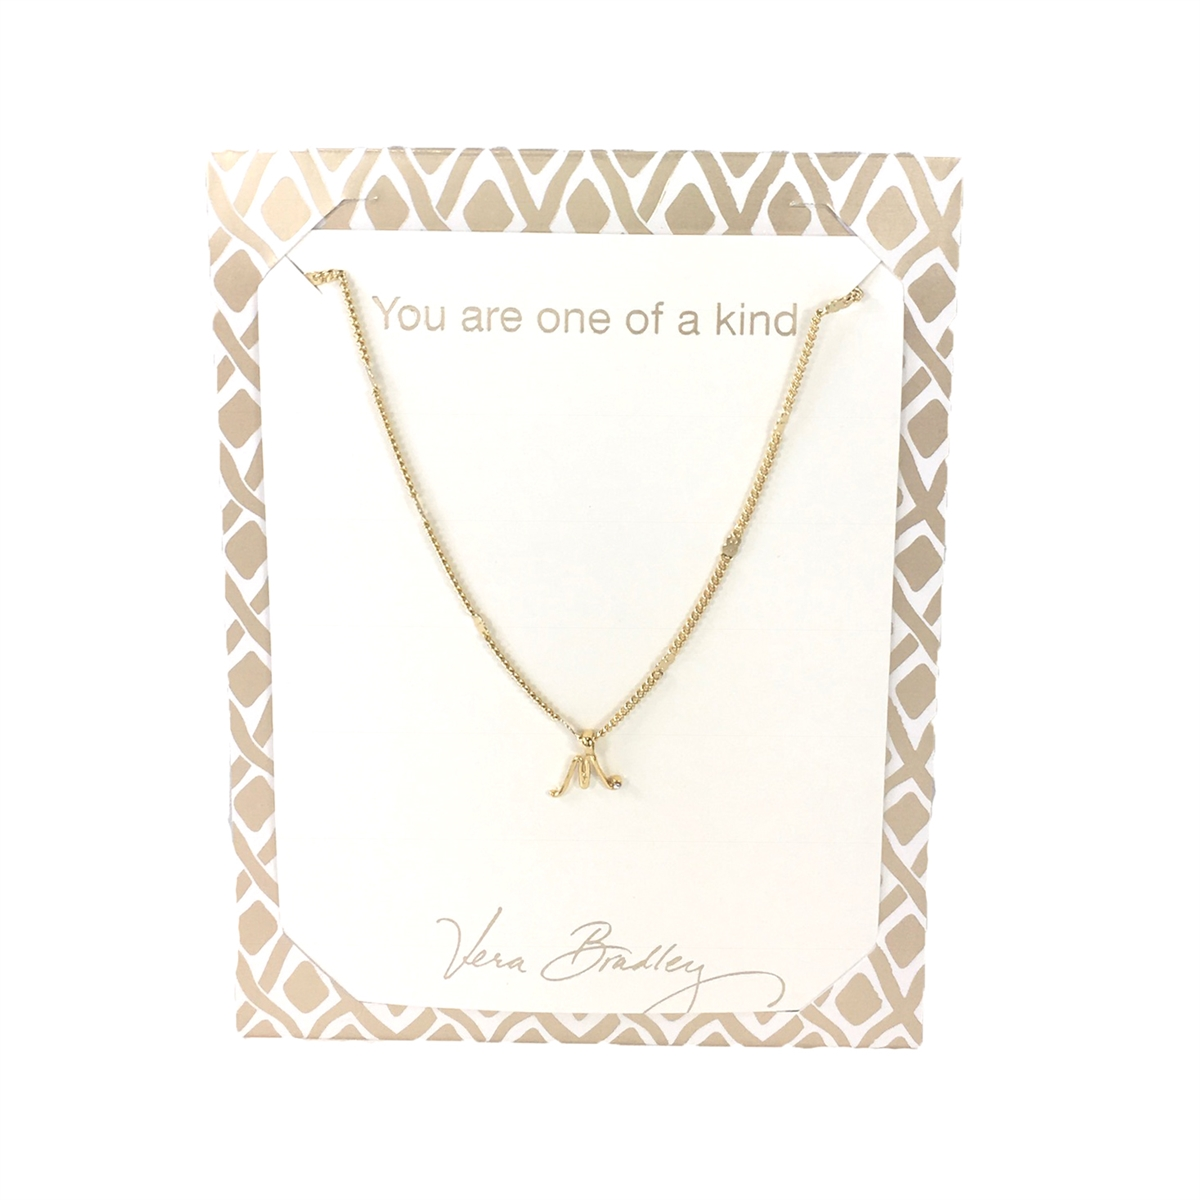 pendant silver chloe rose classic gold products initial the misuzi font necklace large